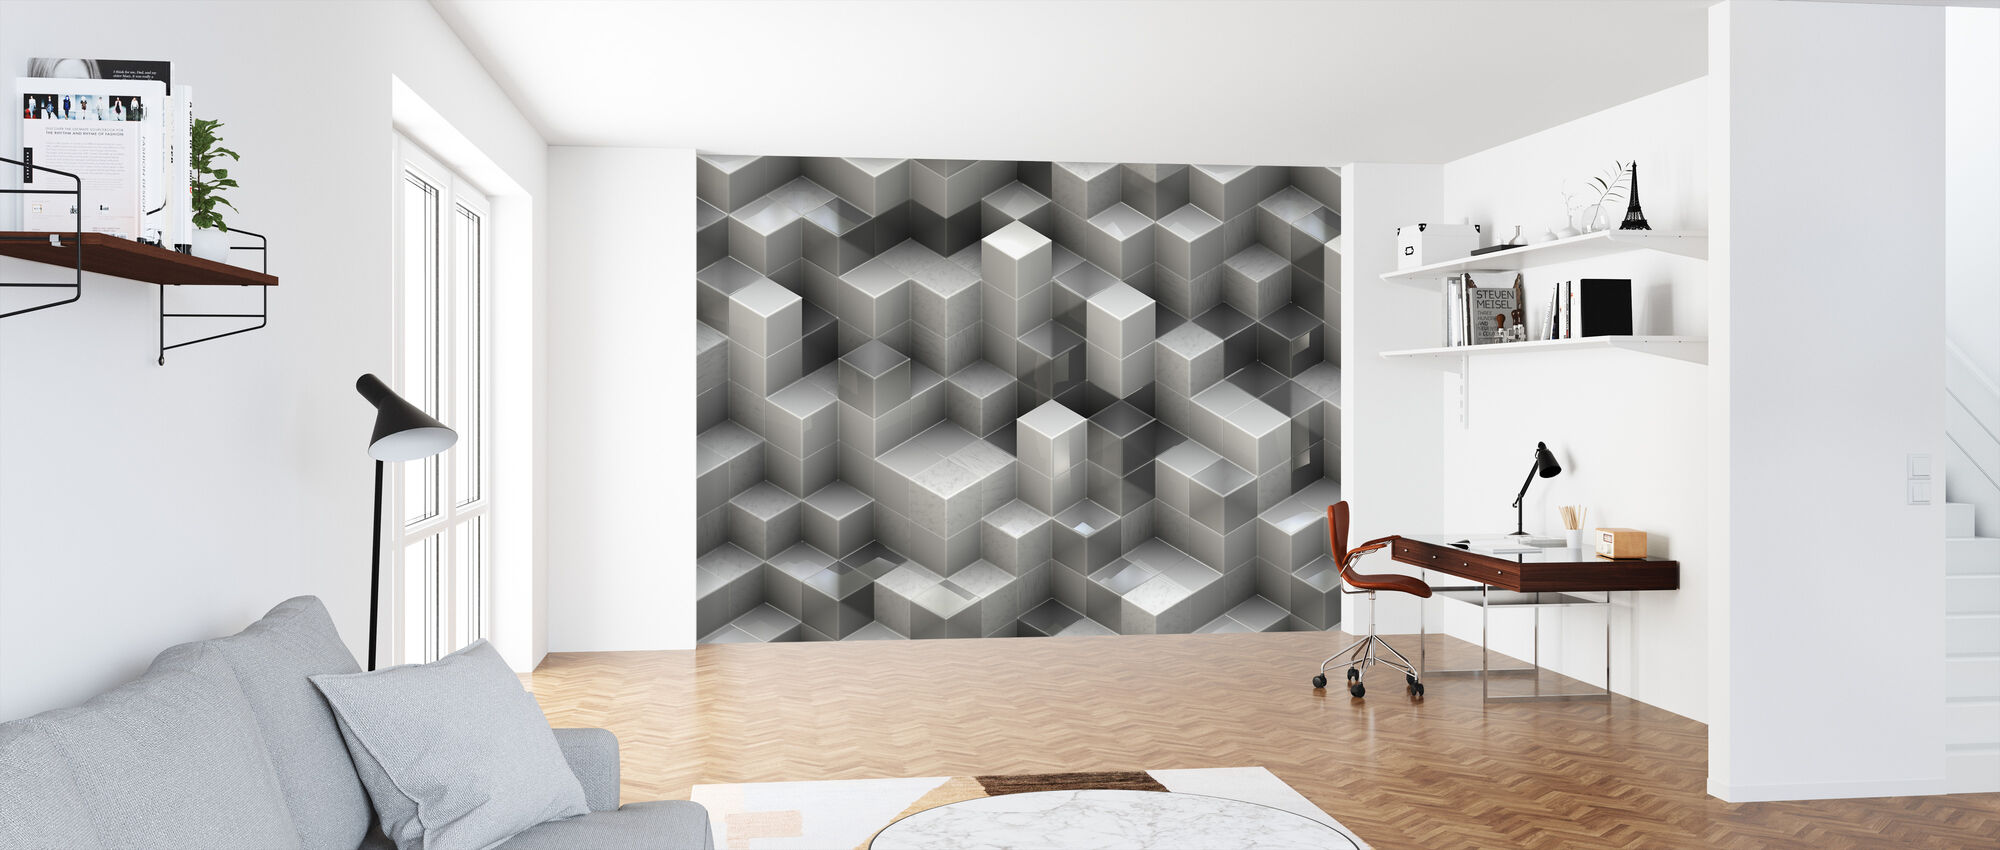 3D Construction - Wallpaper - Office